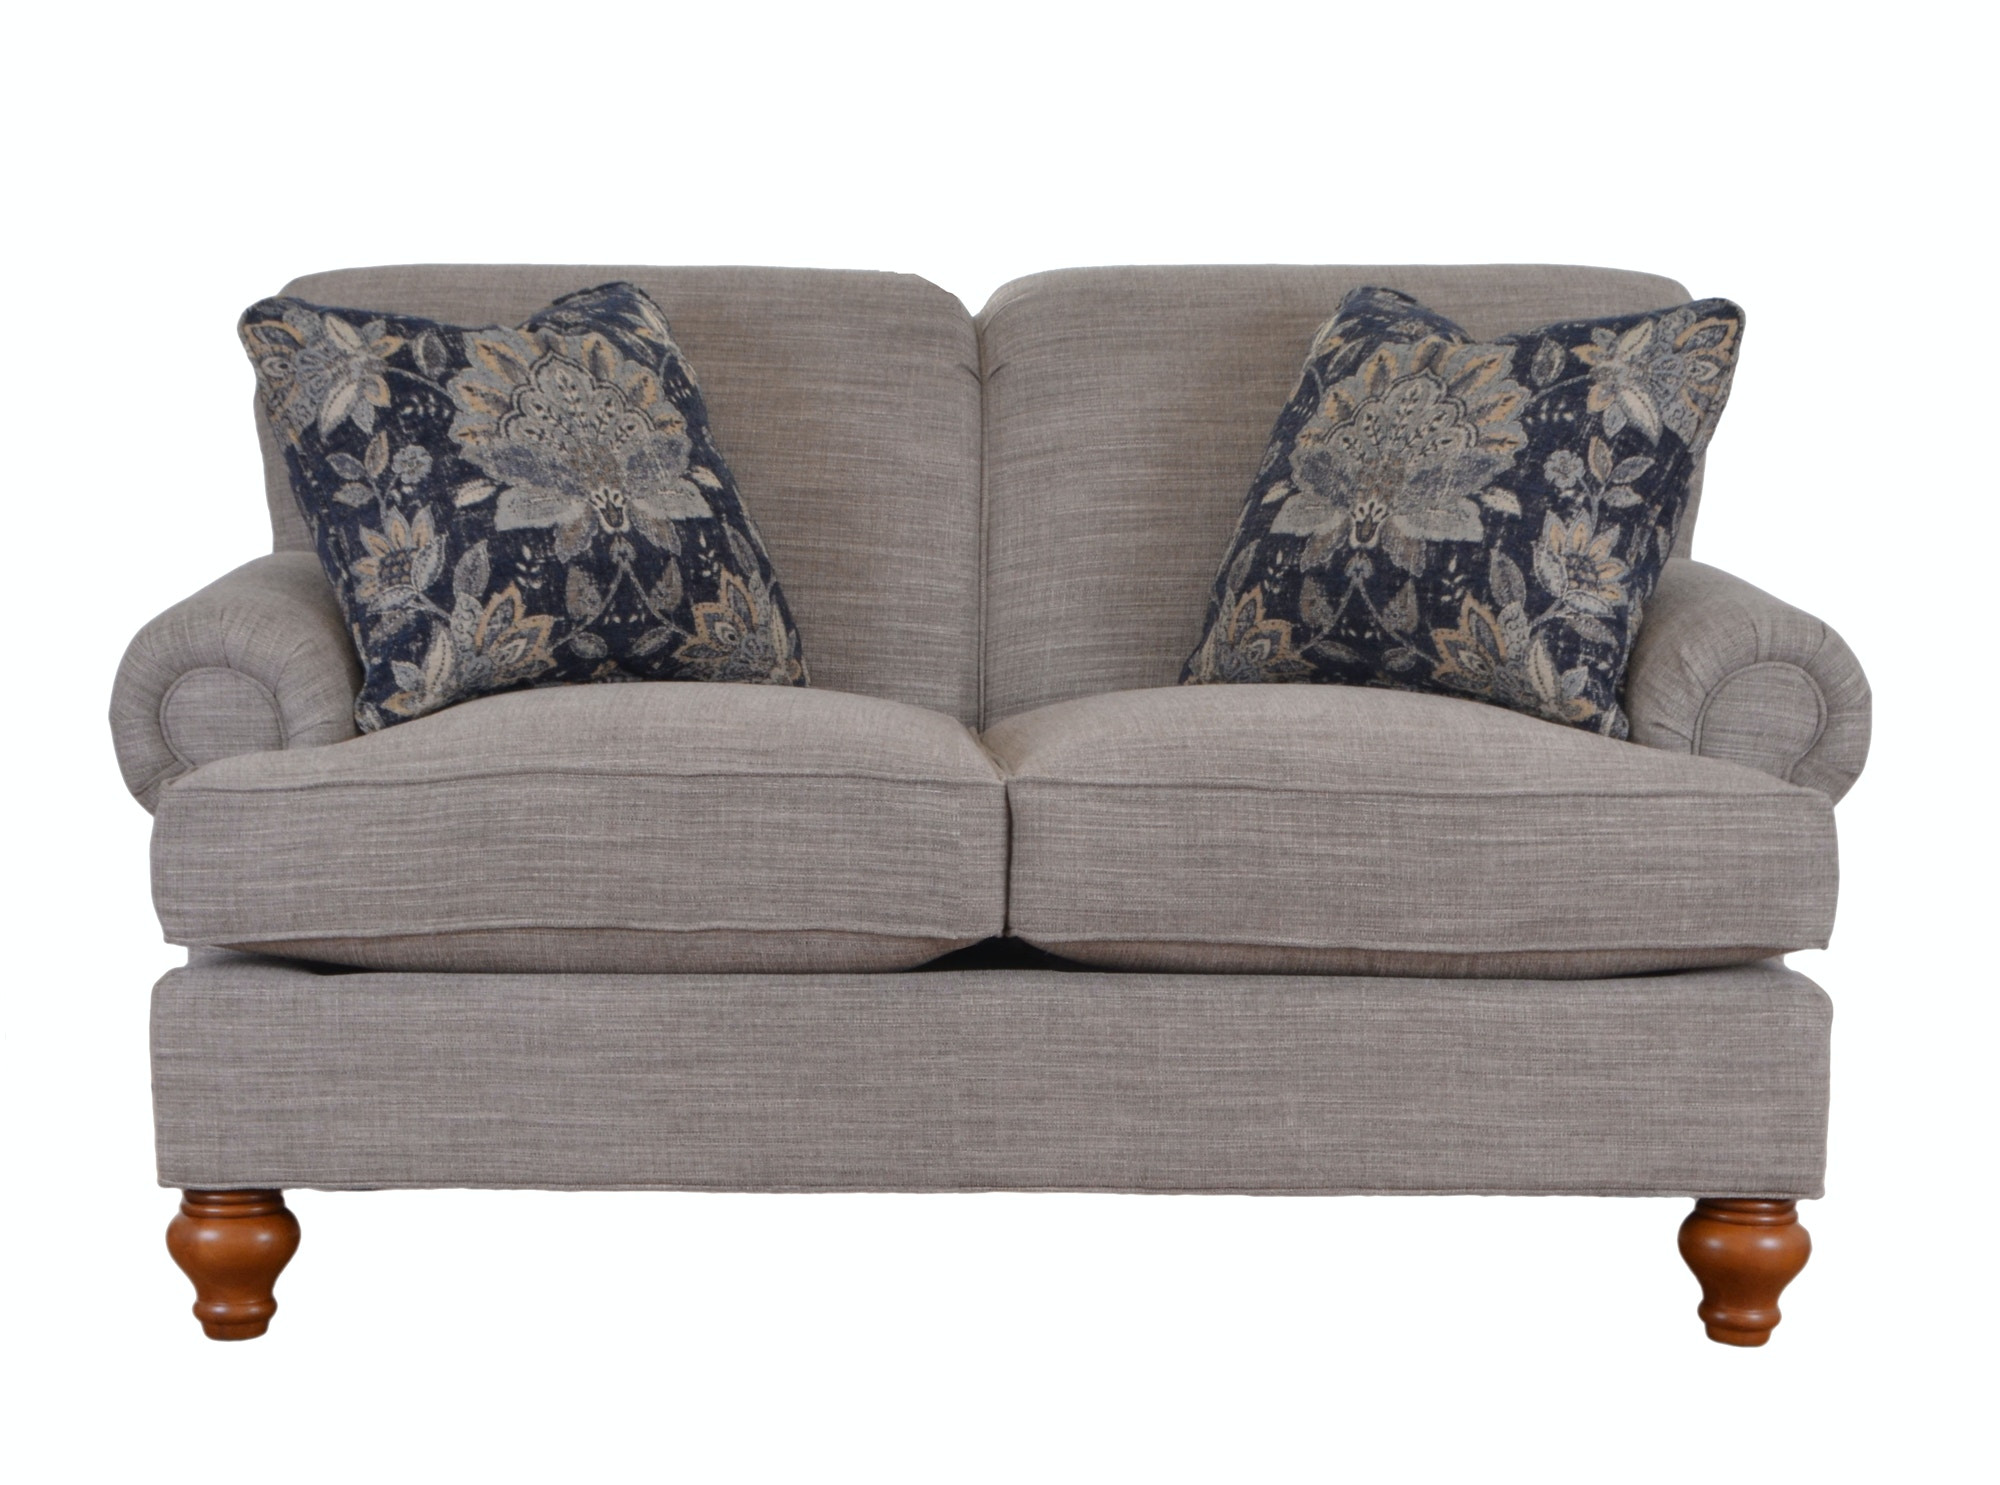 Superb Cozy Life Loveseat With Pillows 738656